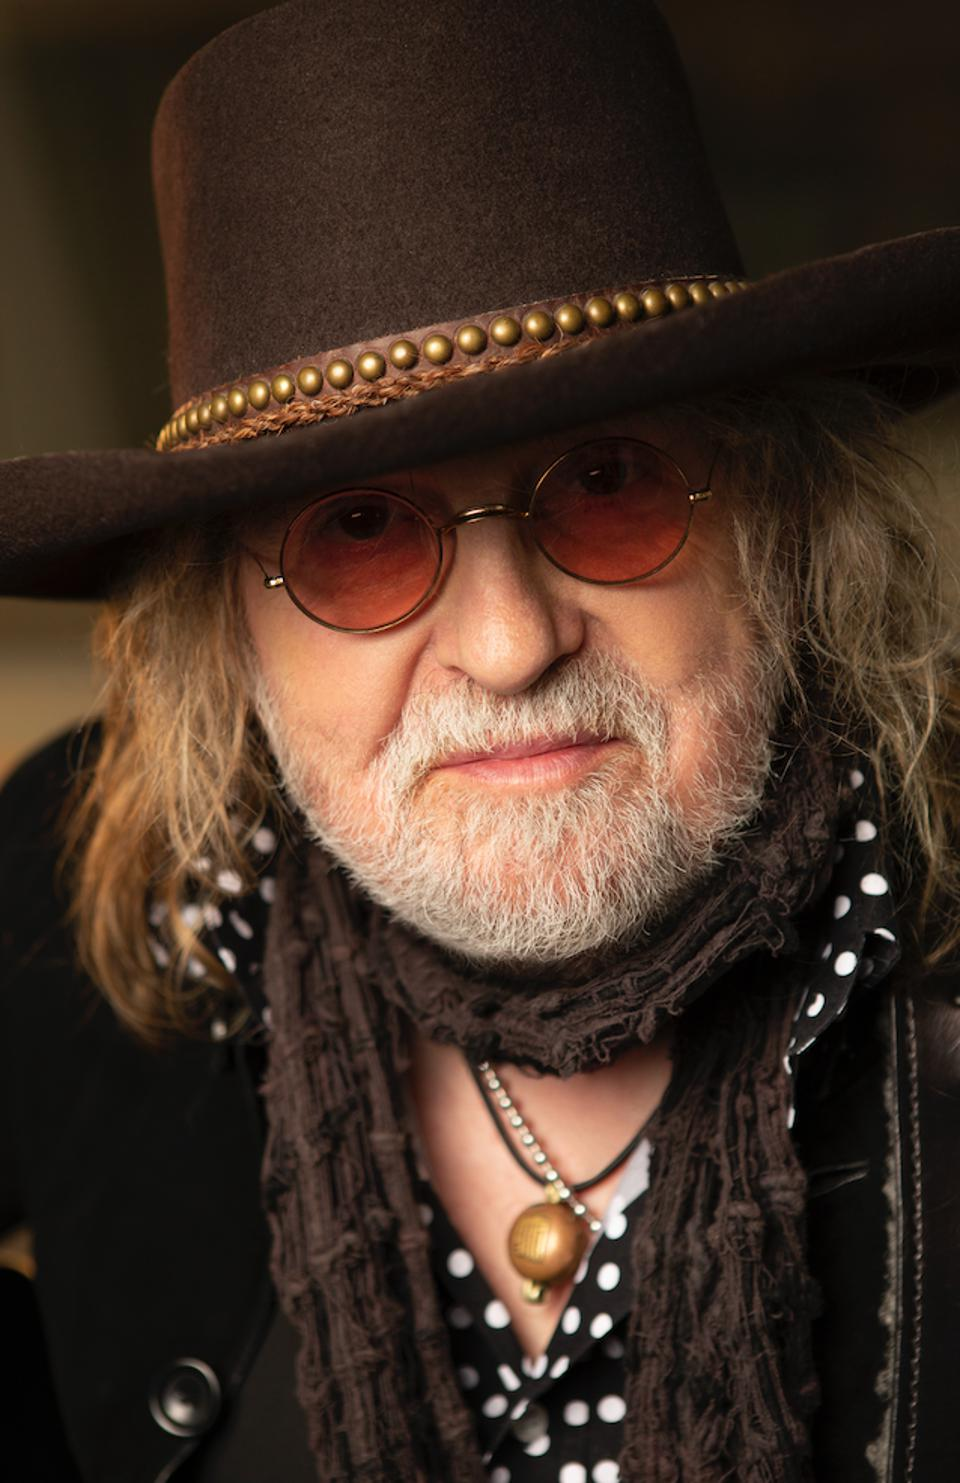 Ray Wylie Hubbard, also playing n the HOME concert